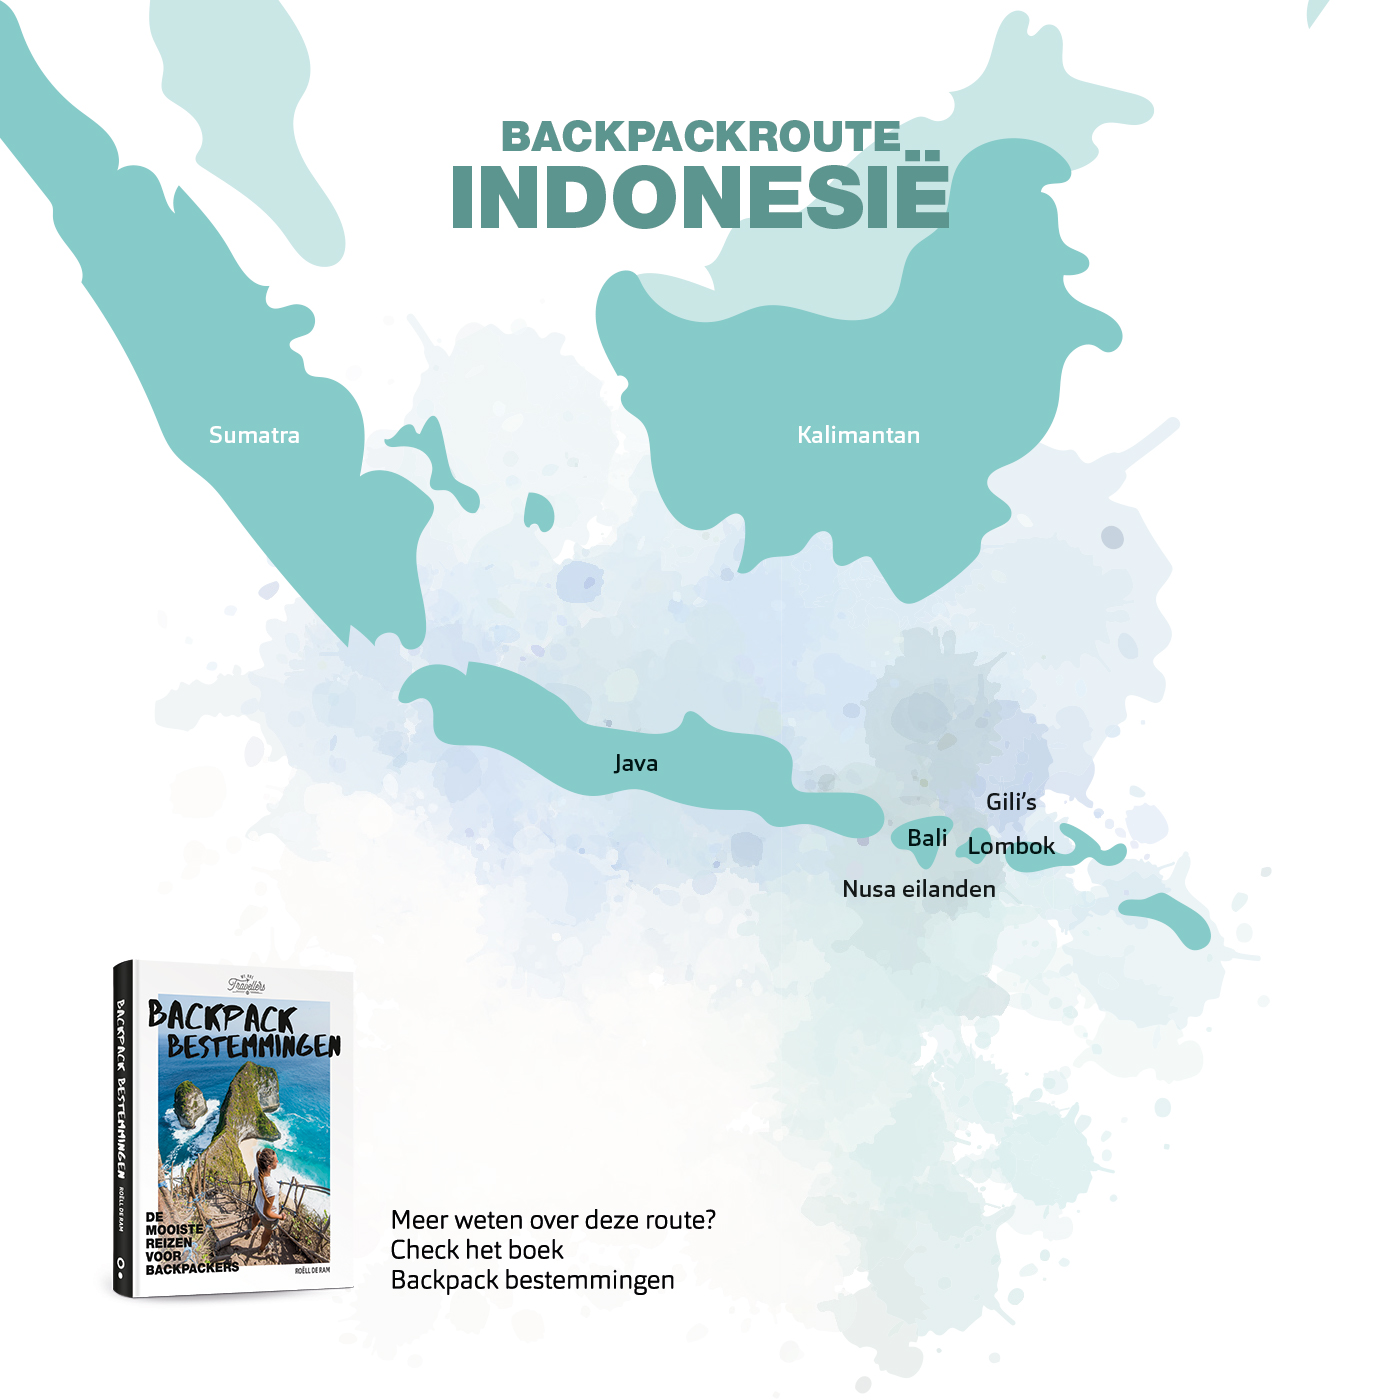 backpack route indonesie boek backpack bestemmingen